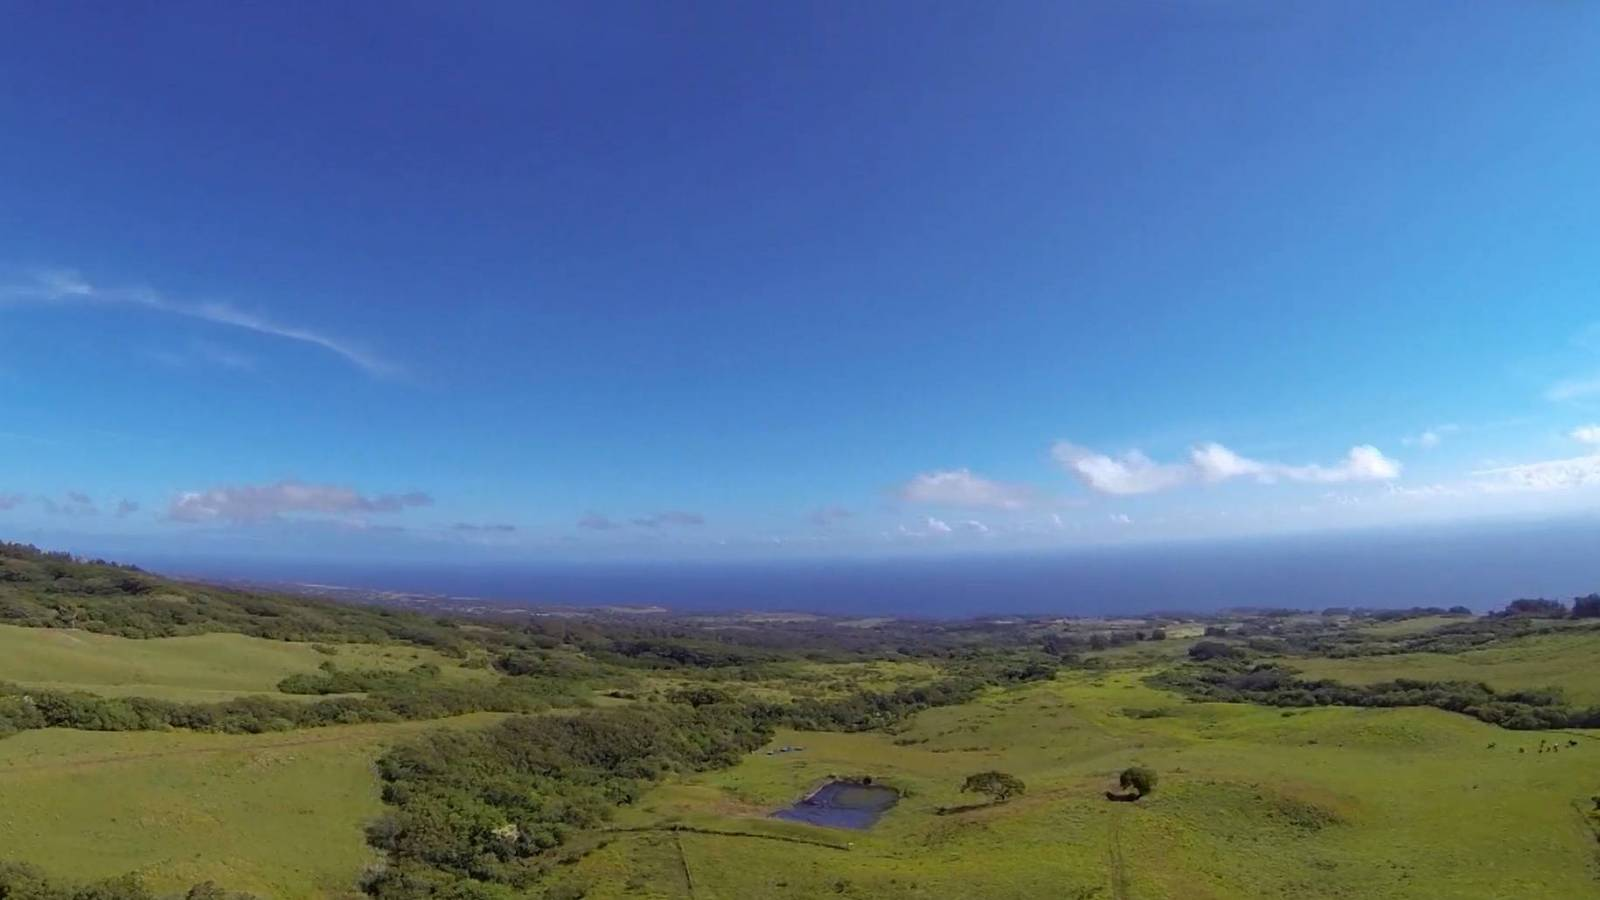 485 acre ranch or farm parcel in North Kohala